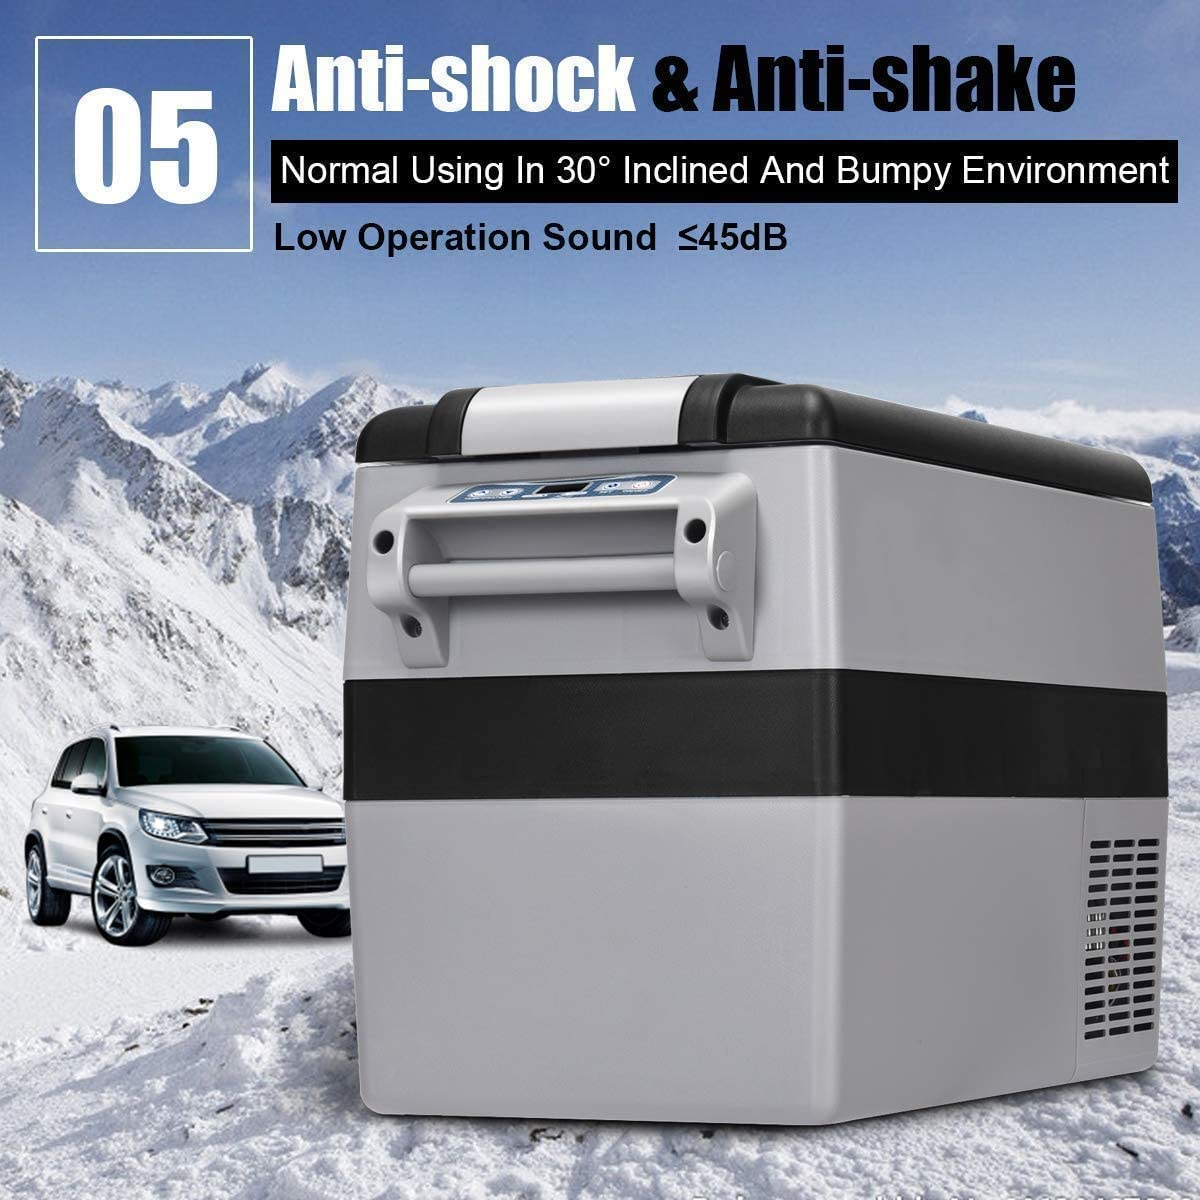 COSTWAY Car Refrigerator, 44 Quart Compressor Cooler and Freezer, -4 F to 50 F, Portable and Compact Vehicle Car Fridge, for Car, Home, Camping, Traveling